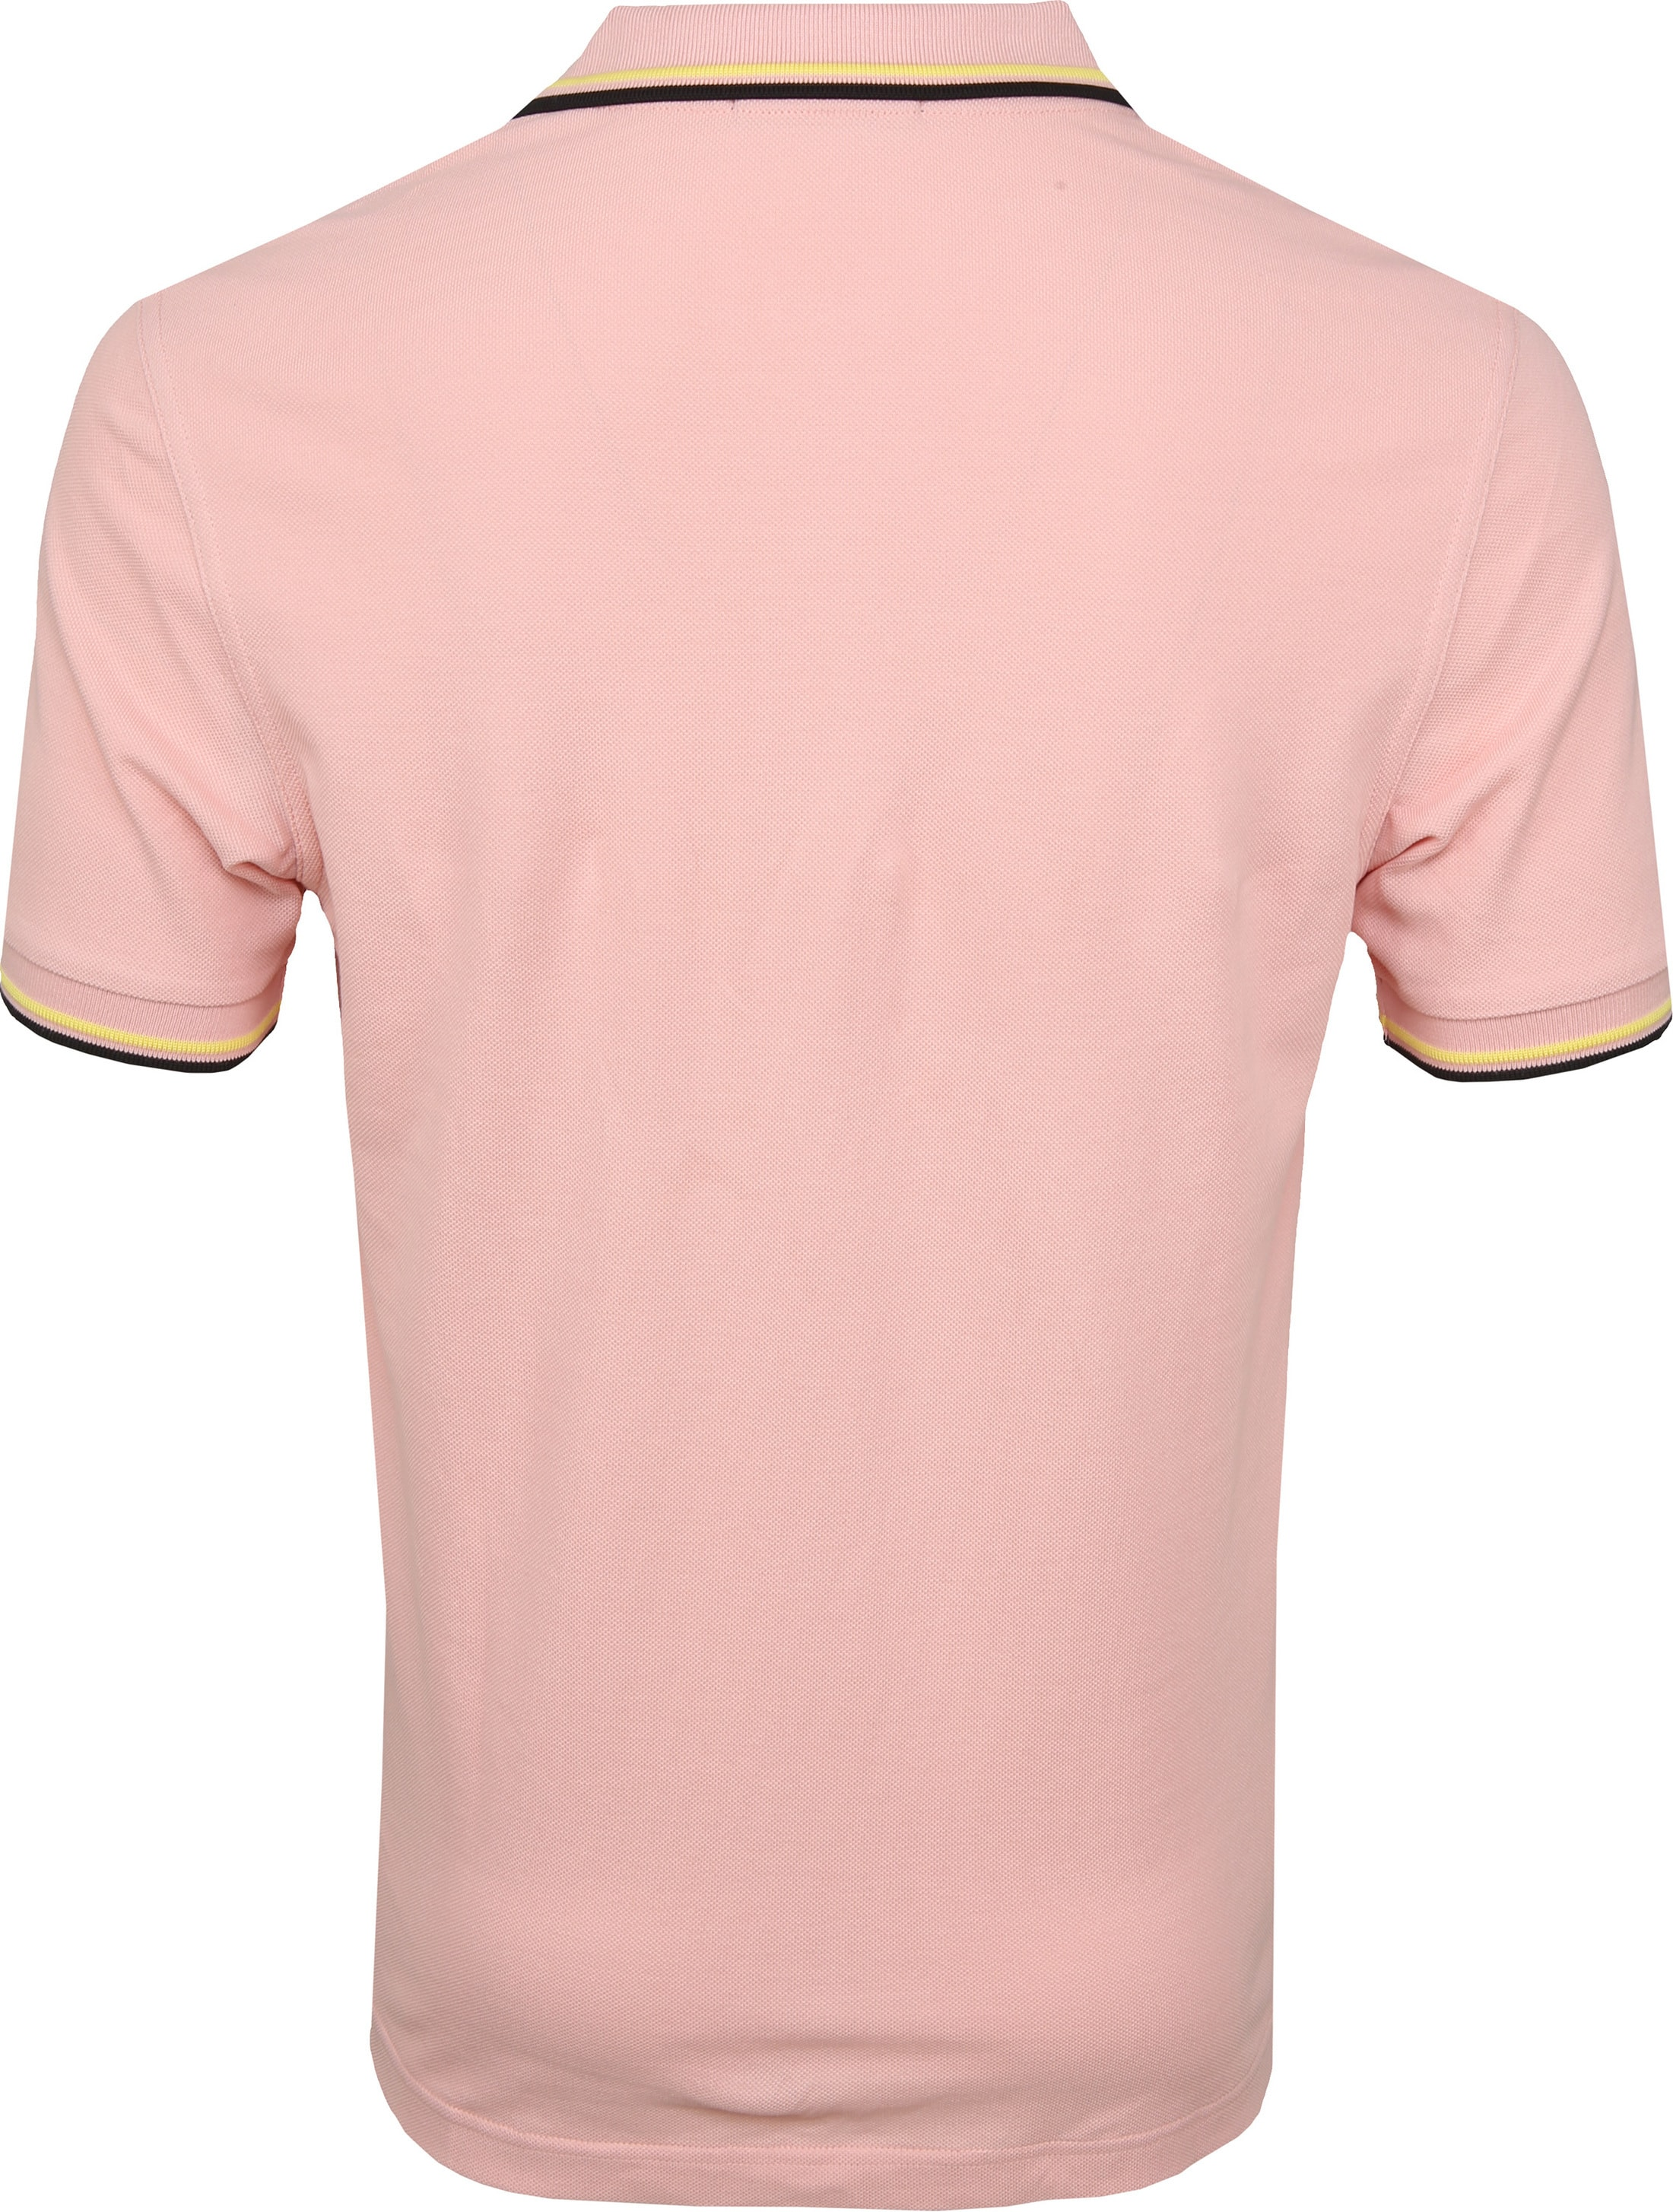 Fred Perry Poloshirt Pink 457 foto 3